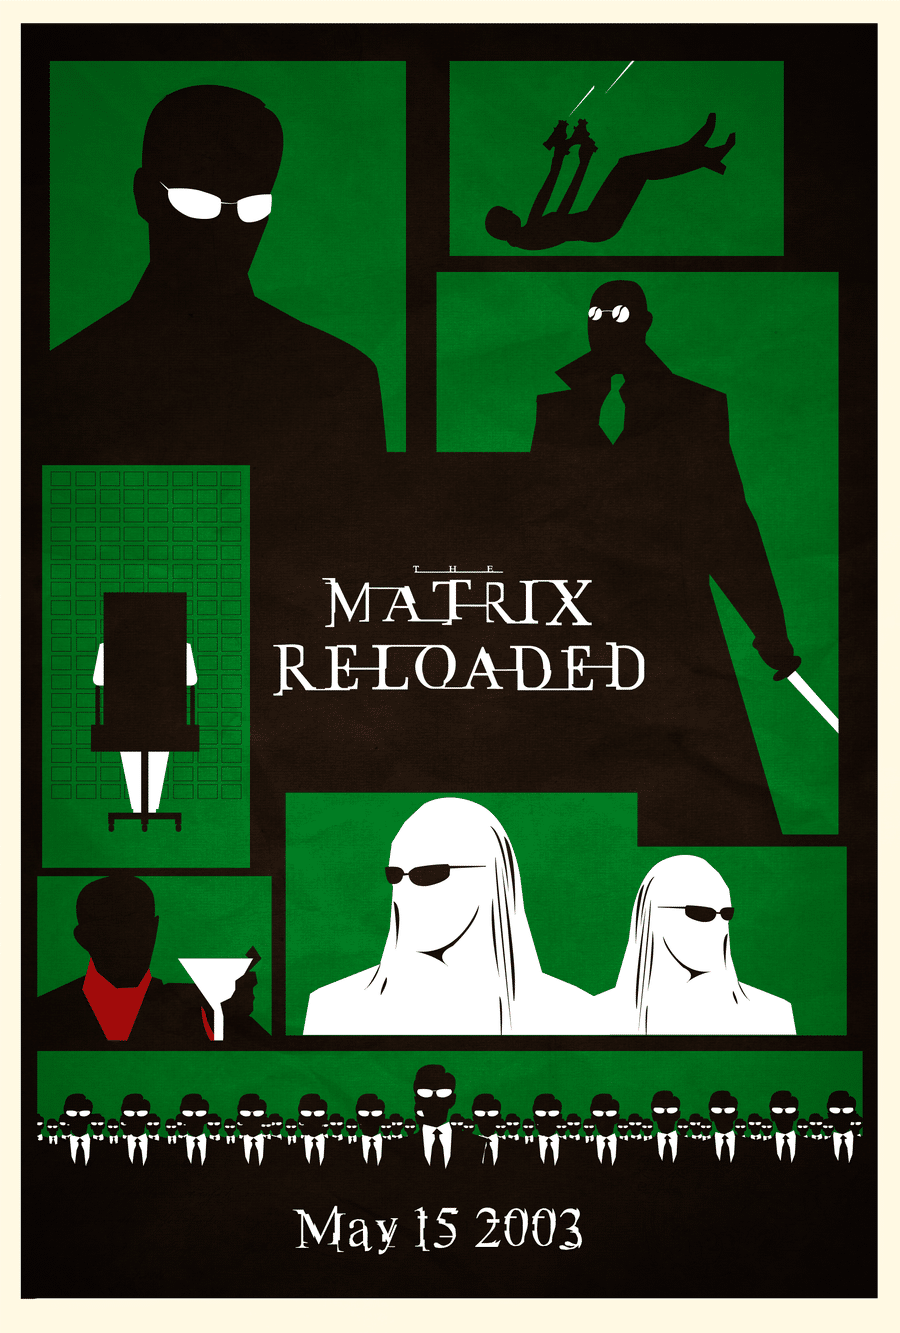 the matrix poster high quality HD printable wallpapers the matrix reloaded 2003 all characters comic style poster